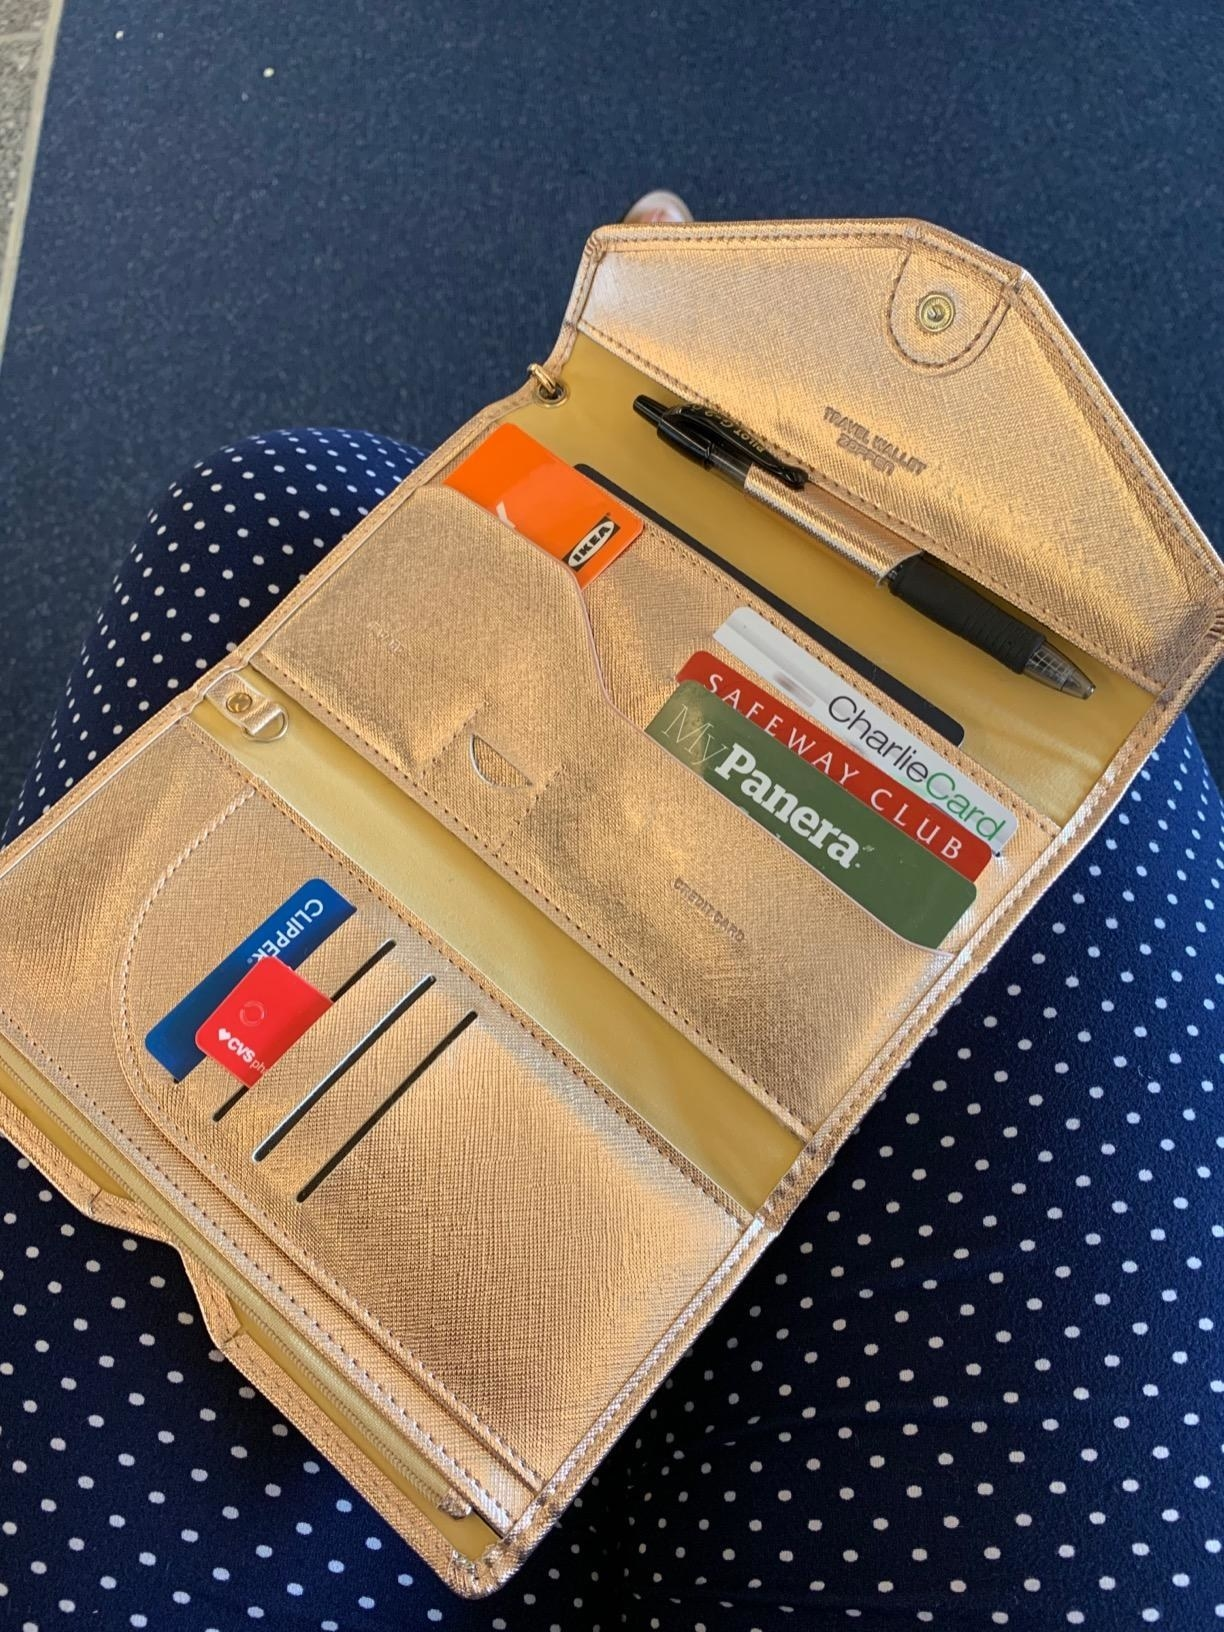 reviewer photo showing their RFID wallet neatly organized with their cards and cash